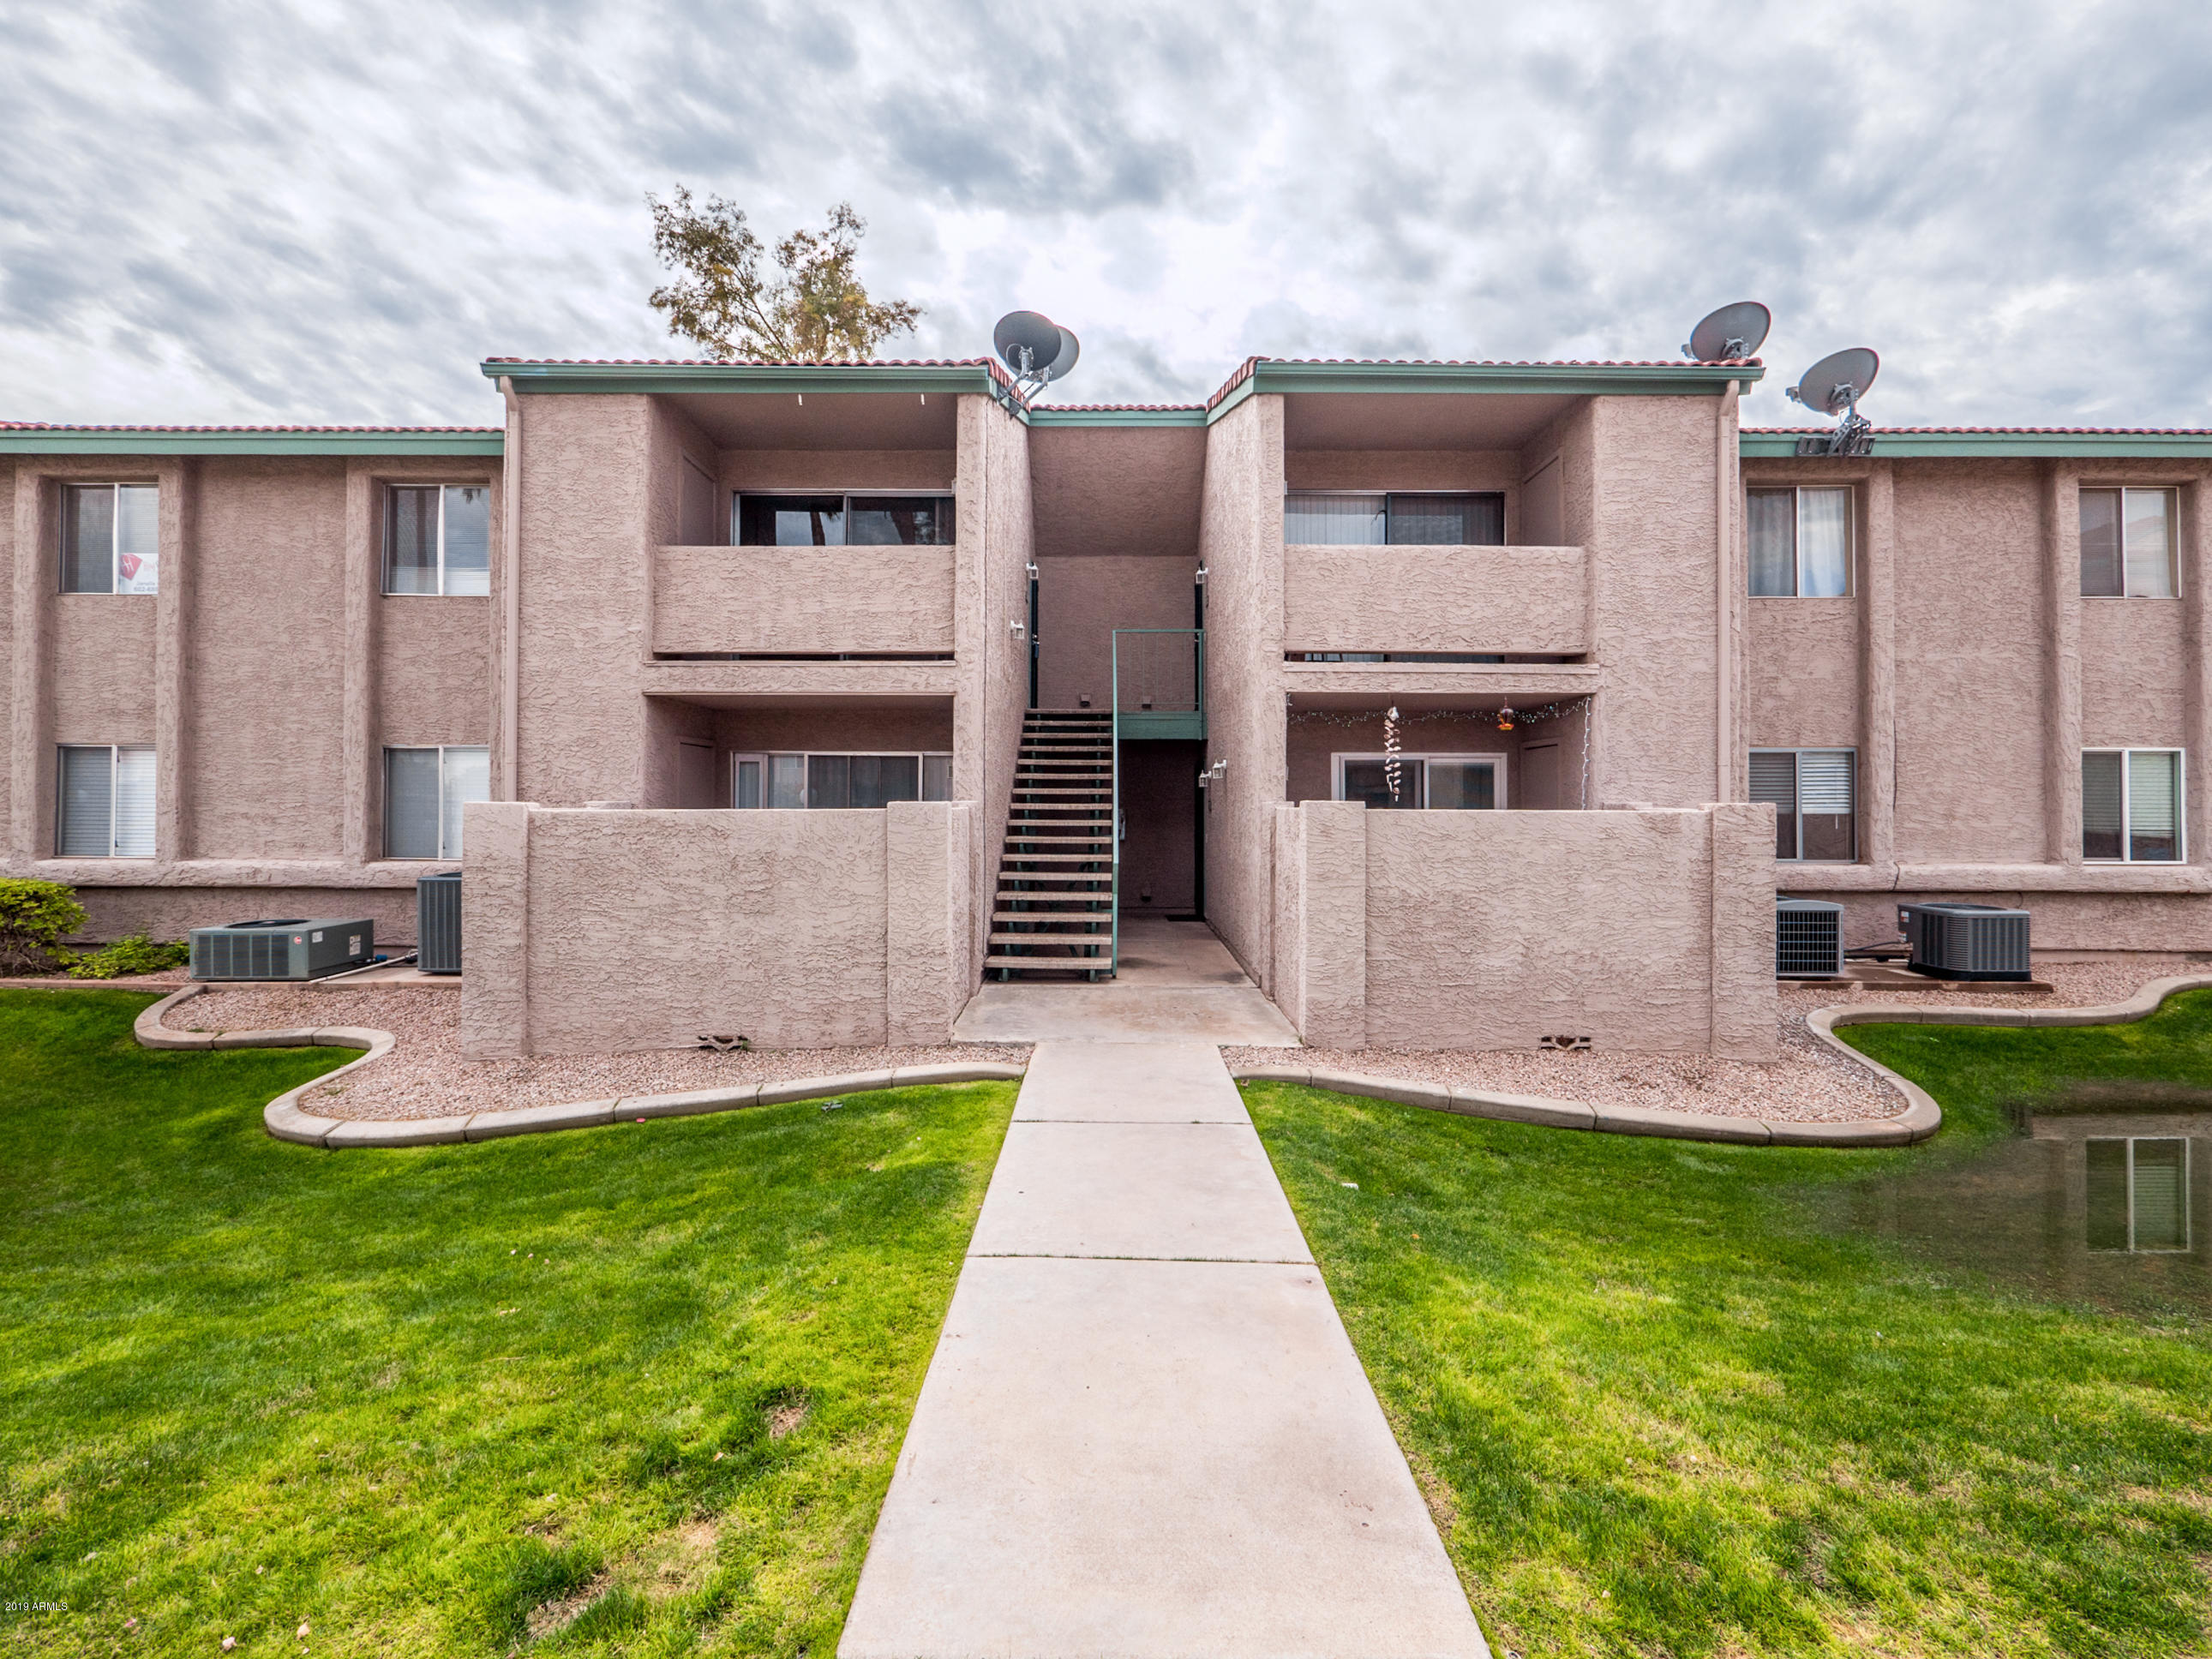 Photo of 623 W GUADALUPE Road #271, Mesa, AZ 85210